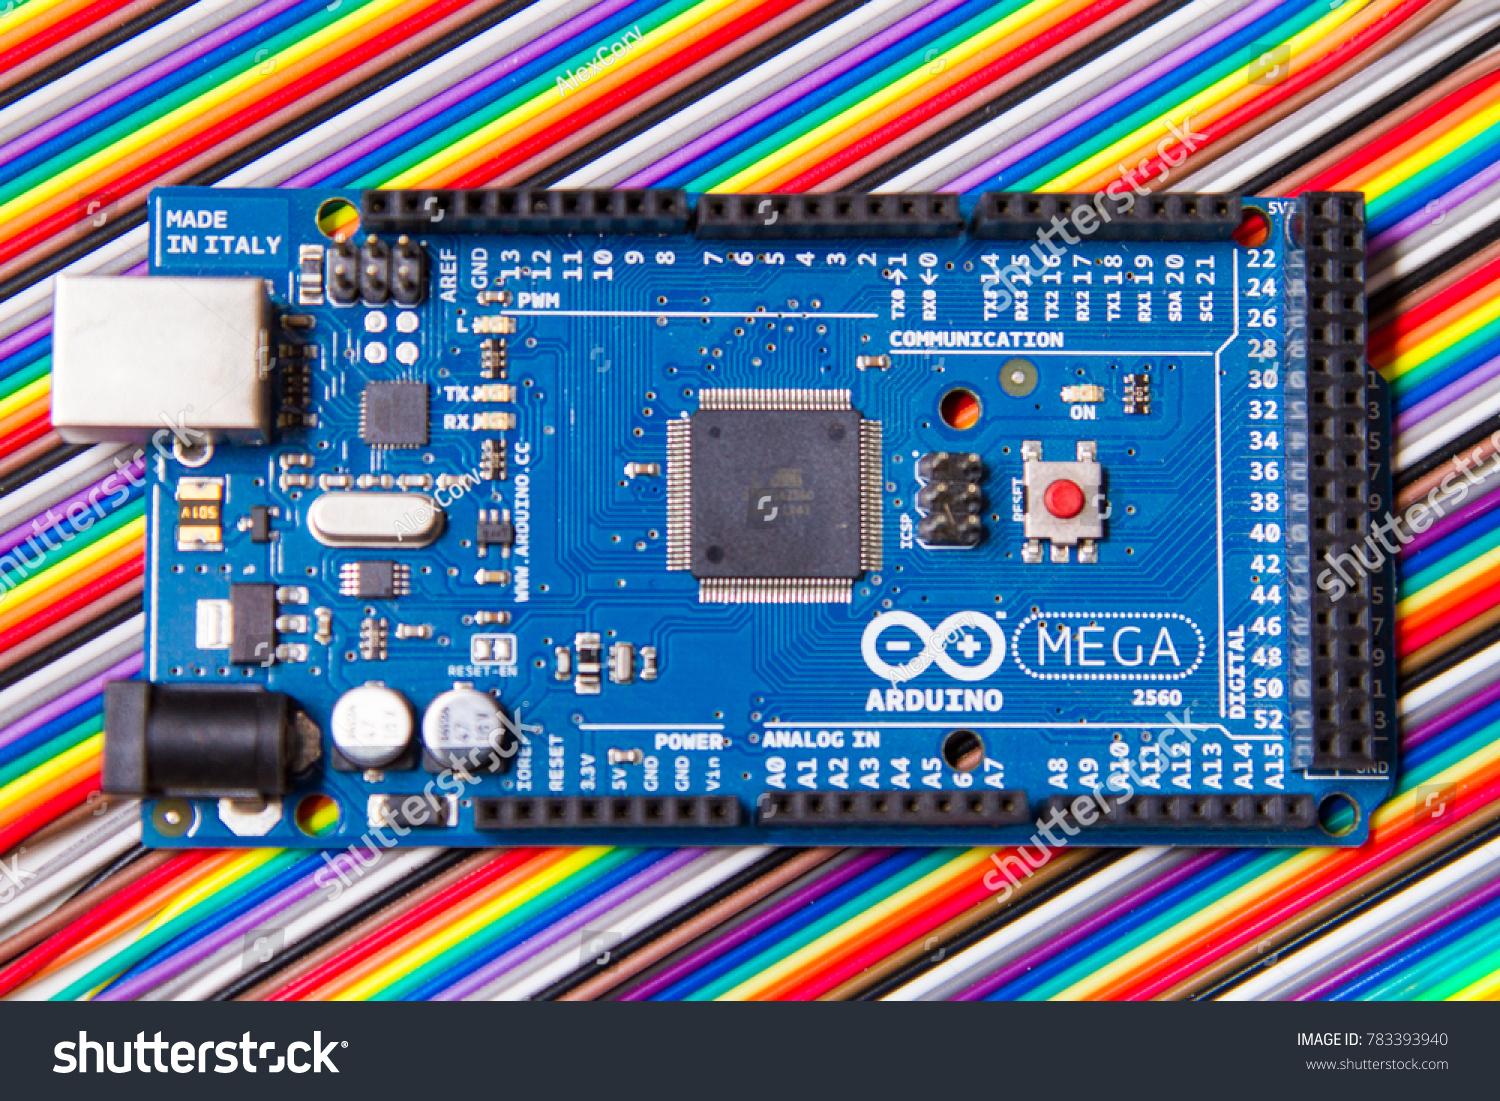 Buenos Aires Argentina 12 29 2017 Stock Photo Edit Now 783393940 Wiring Arduino Mega Board Over Jumper Wires